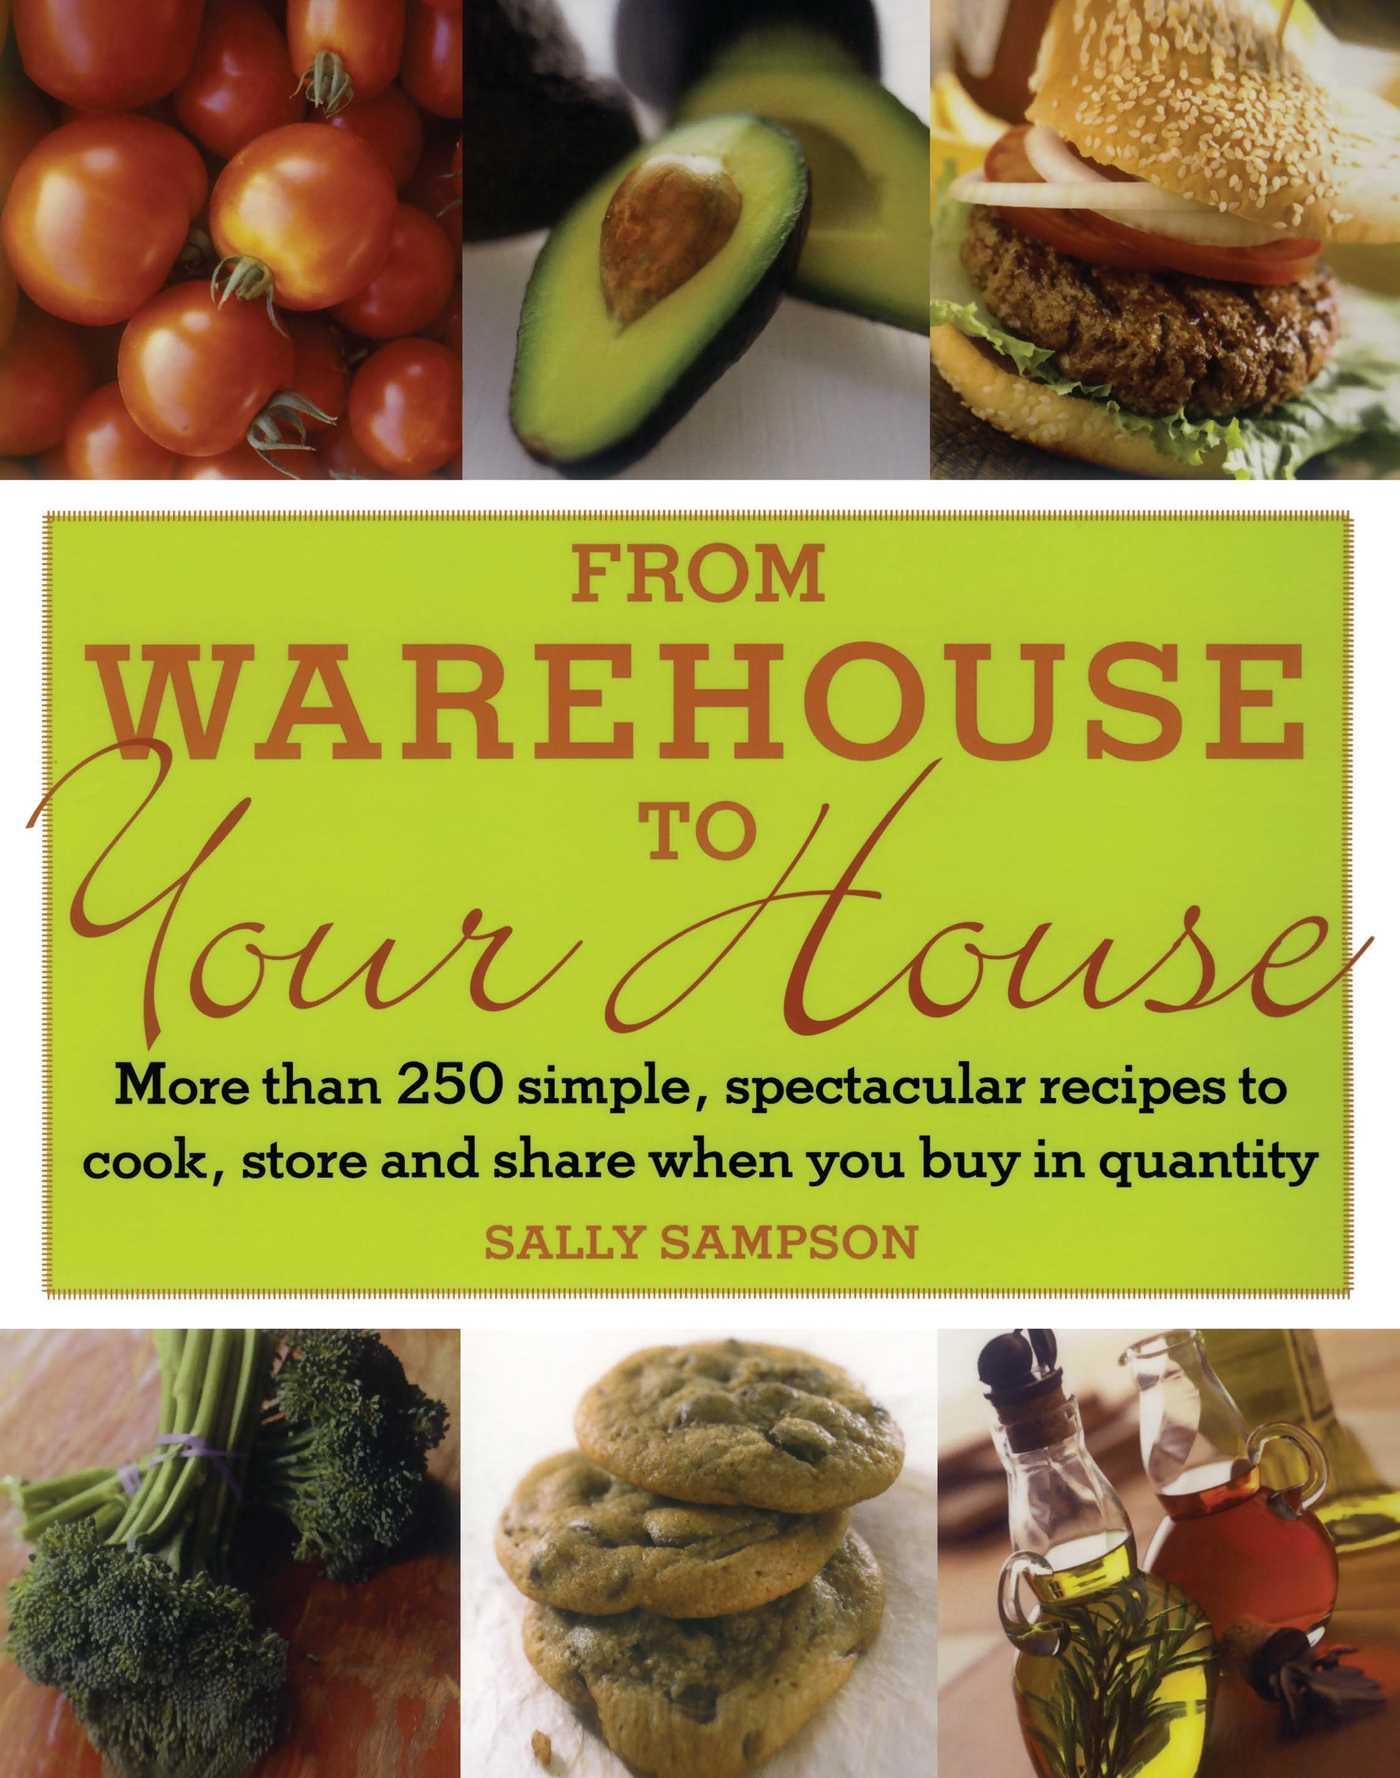 From warehouse to your house 9780743275057 hr